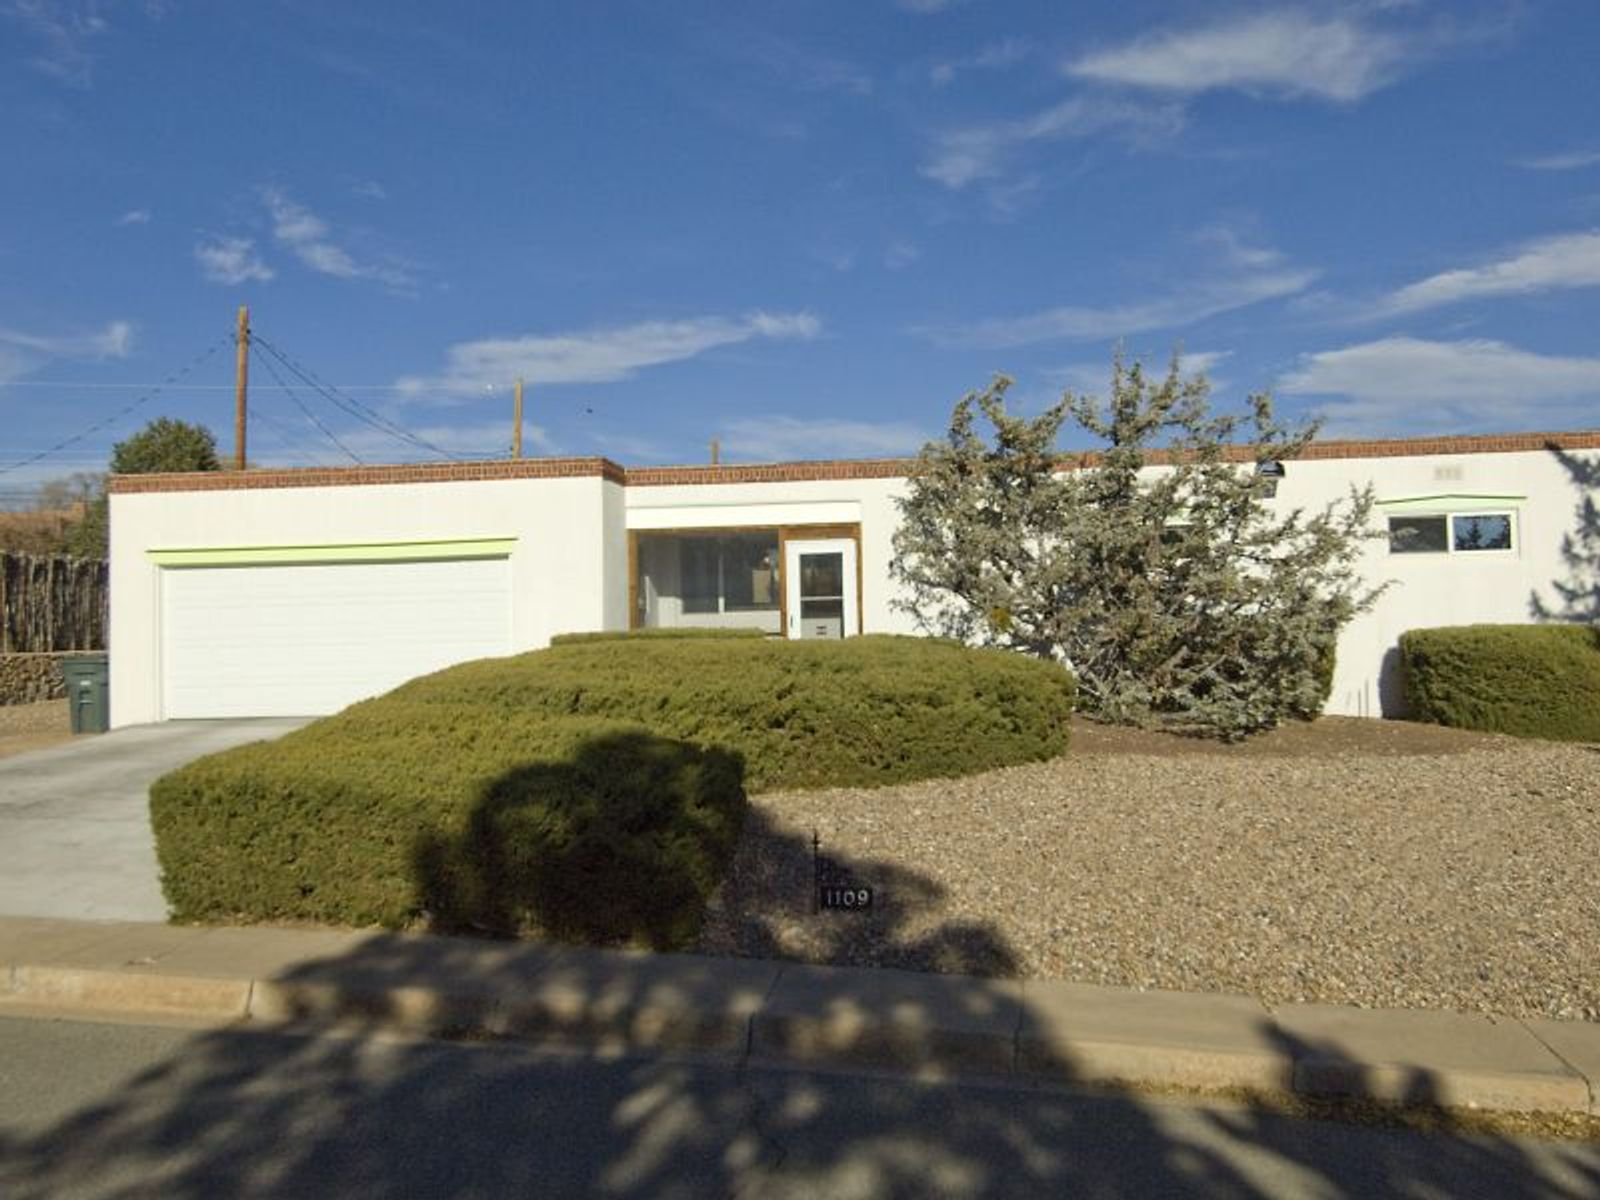 1109 North Luna Circle, Santa Fe NM Single Family Home - Santa Fe Real Estate